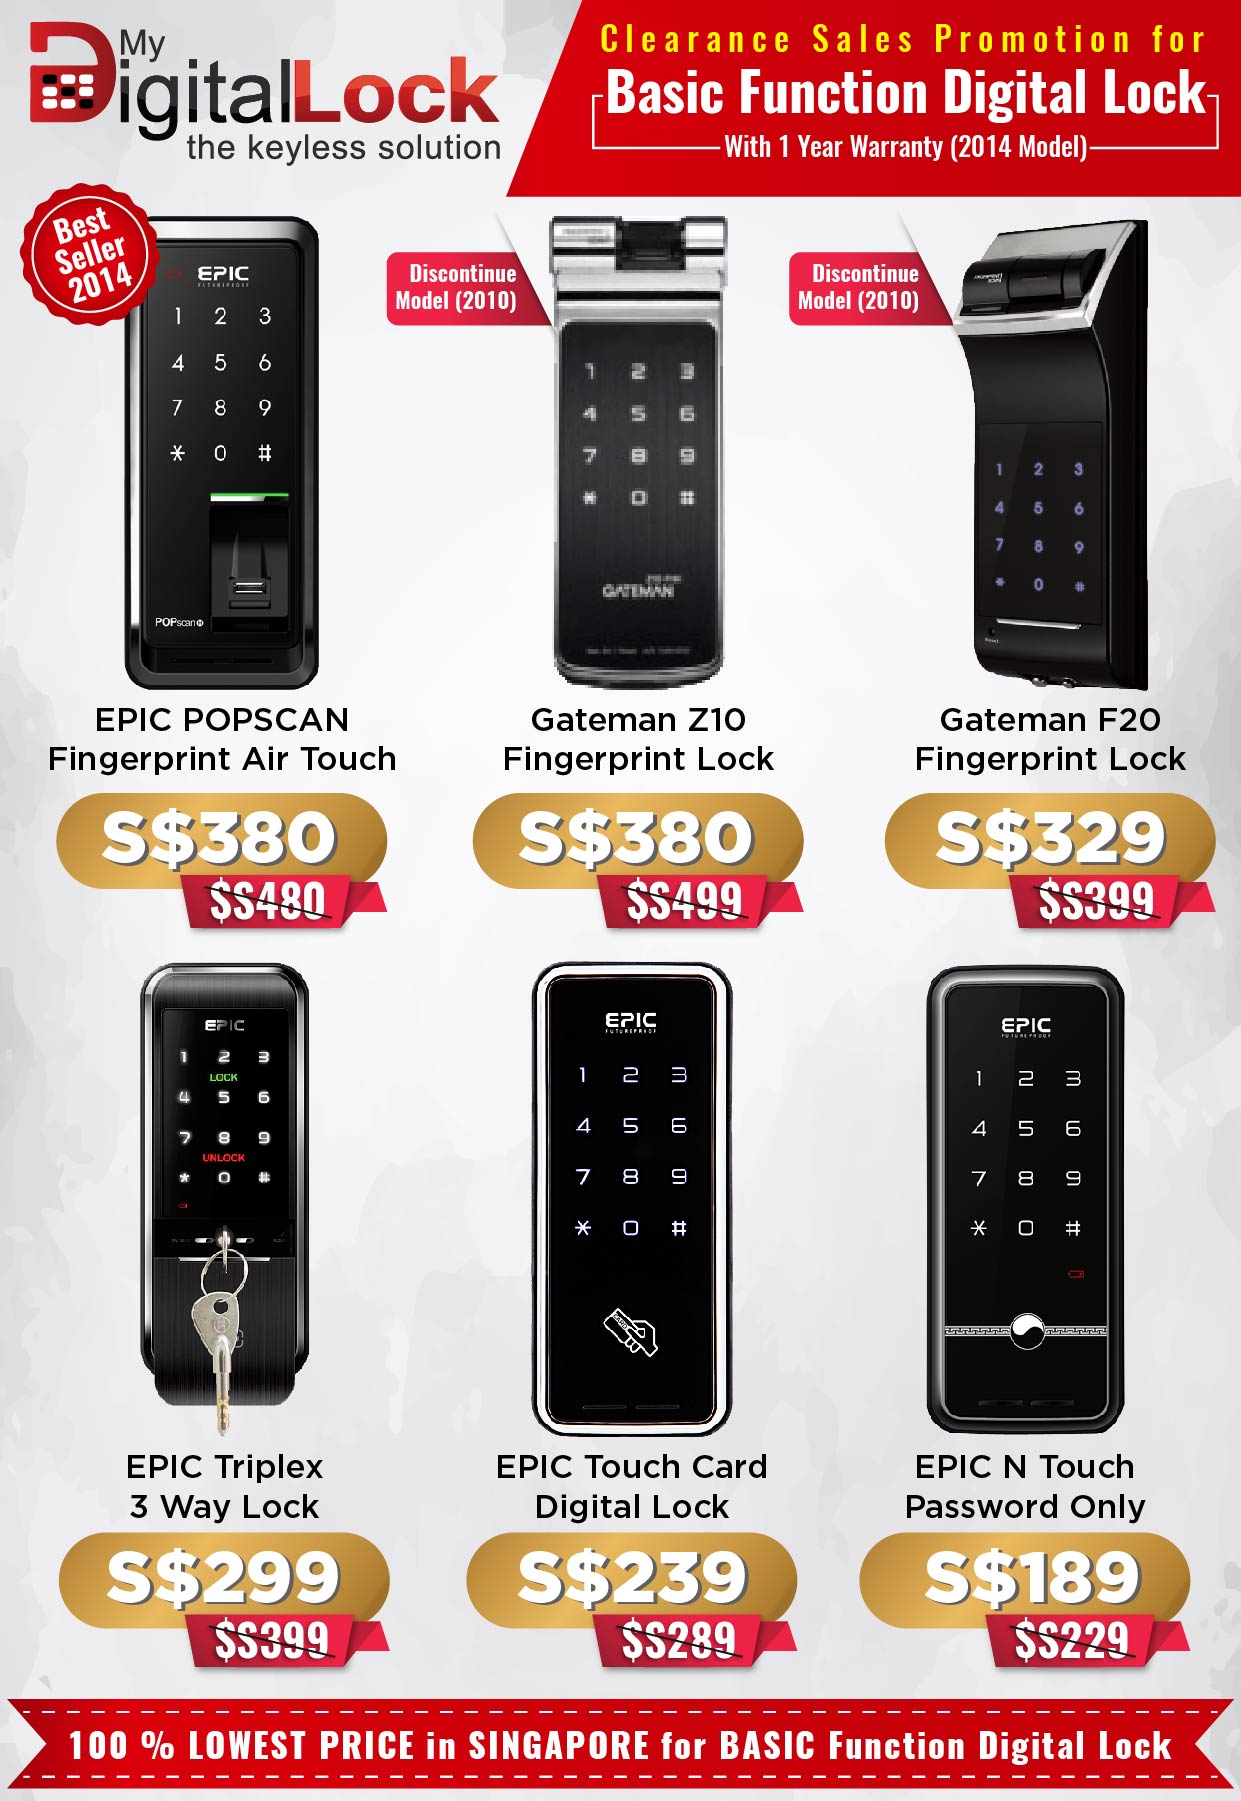 Clearance Sales Promotion for EPIC and Gateman